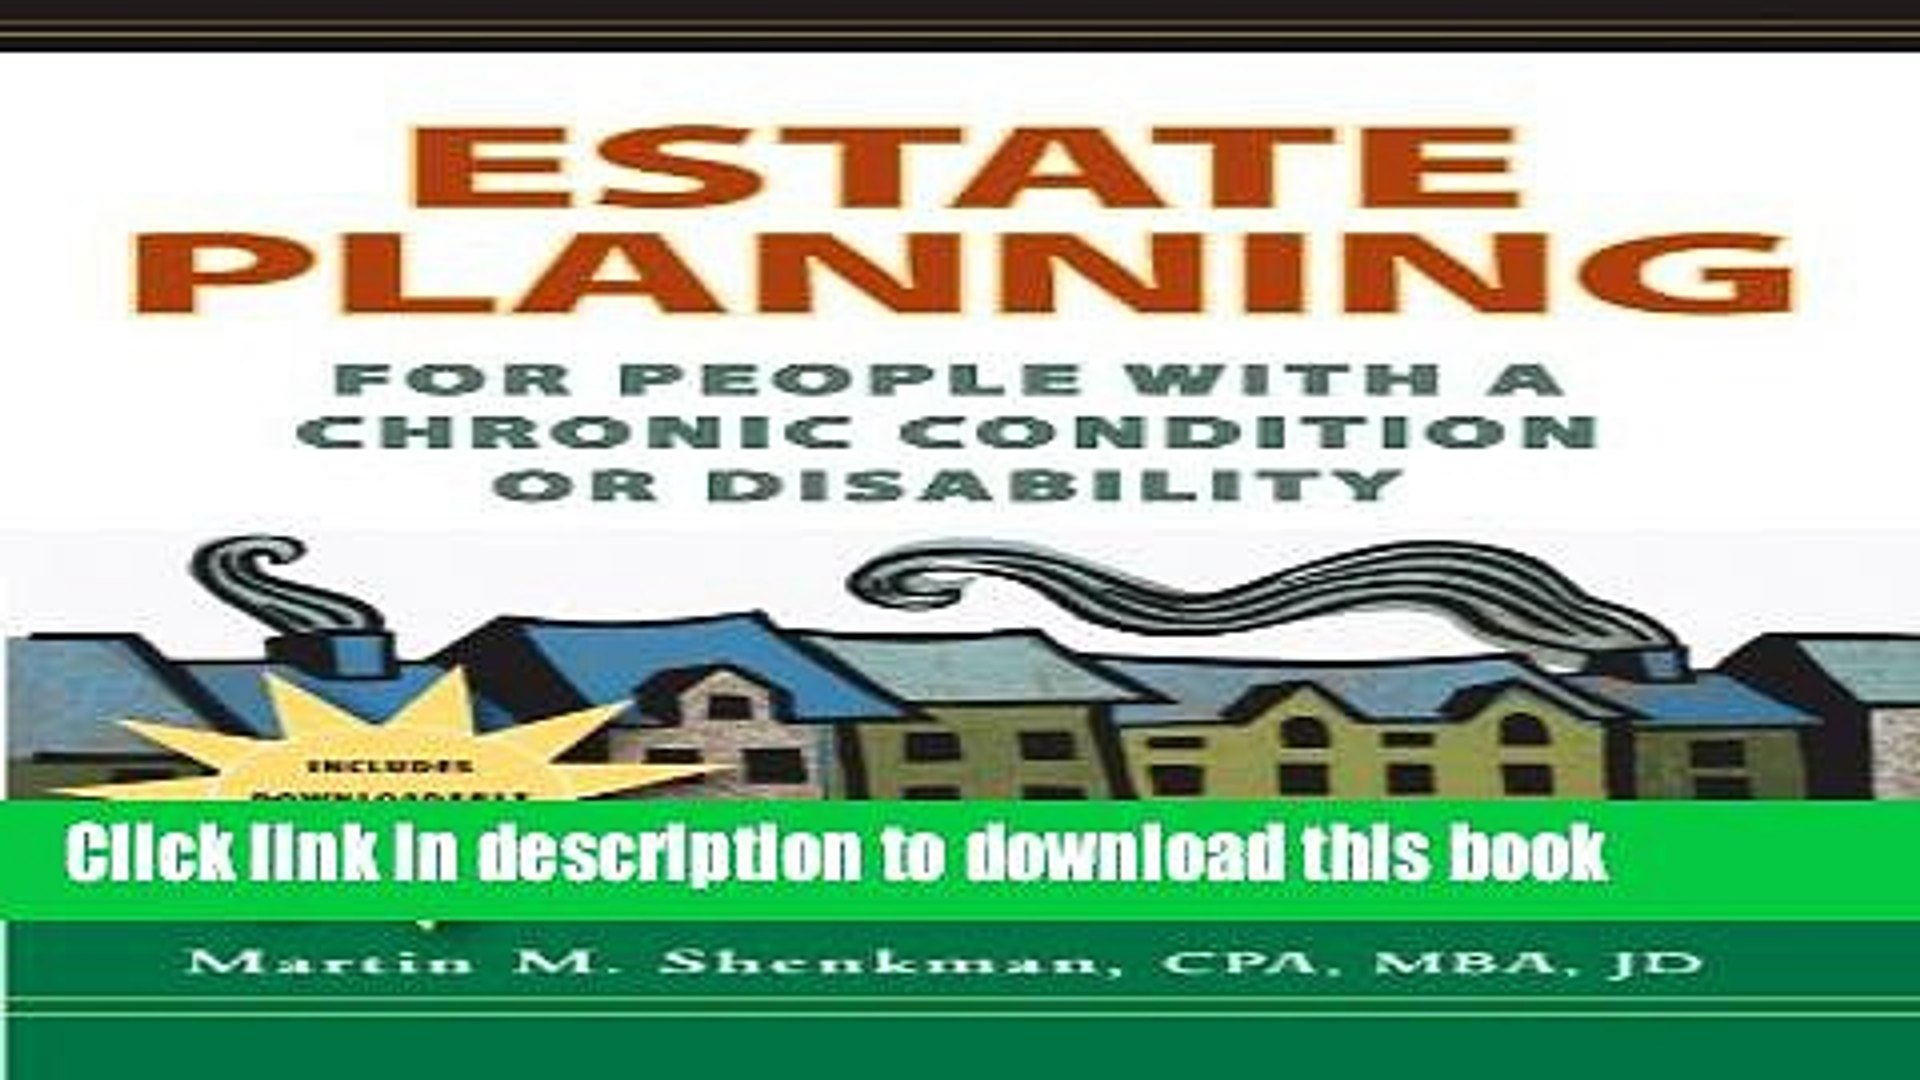 Books Estate Planning for People with a Chronic Condition or Disability: Options for People with a